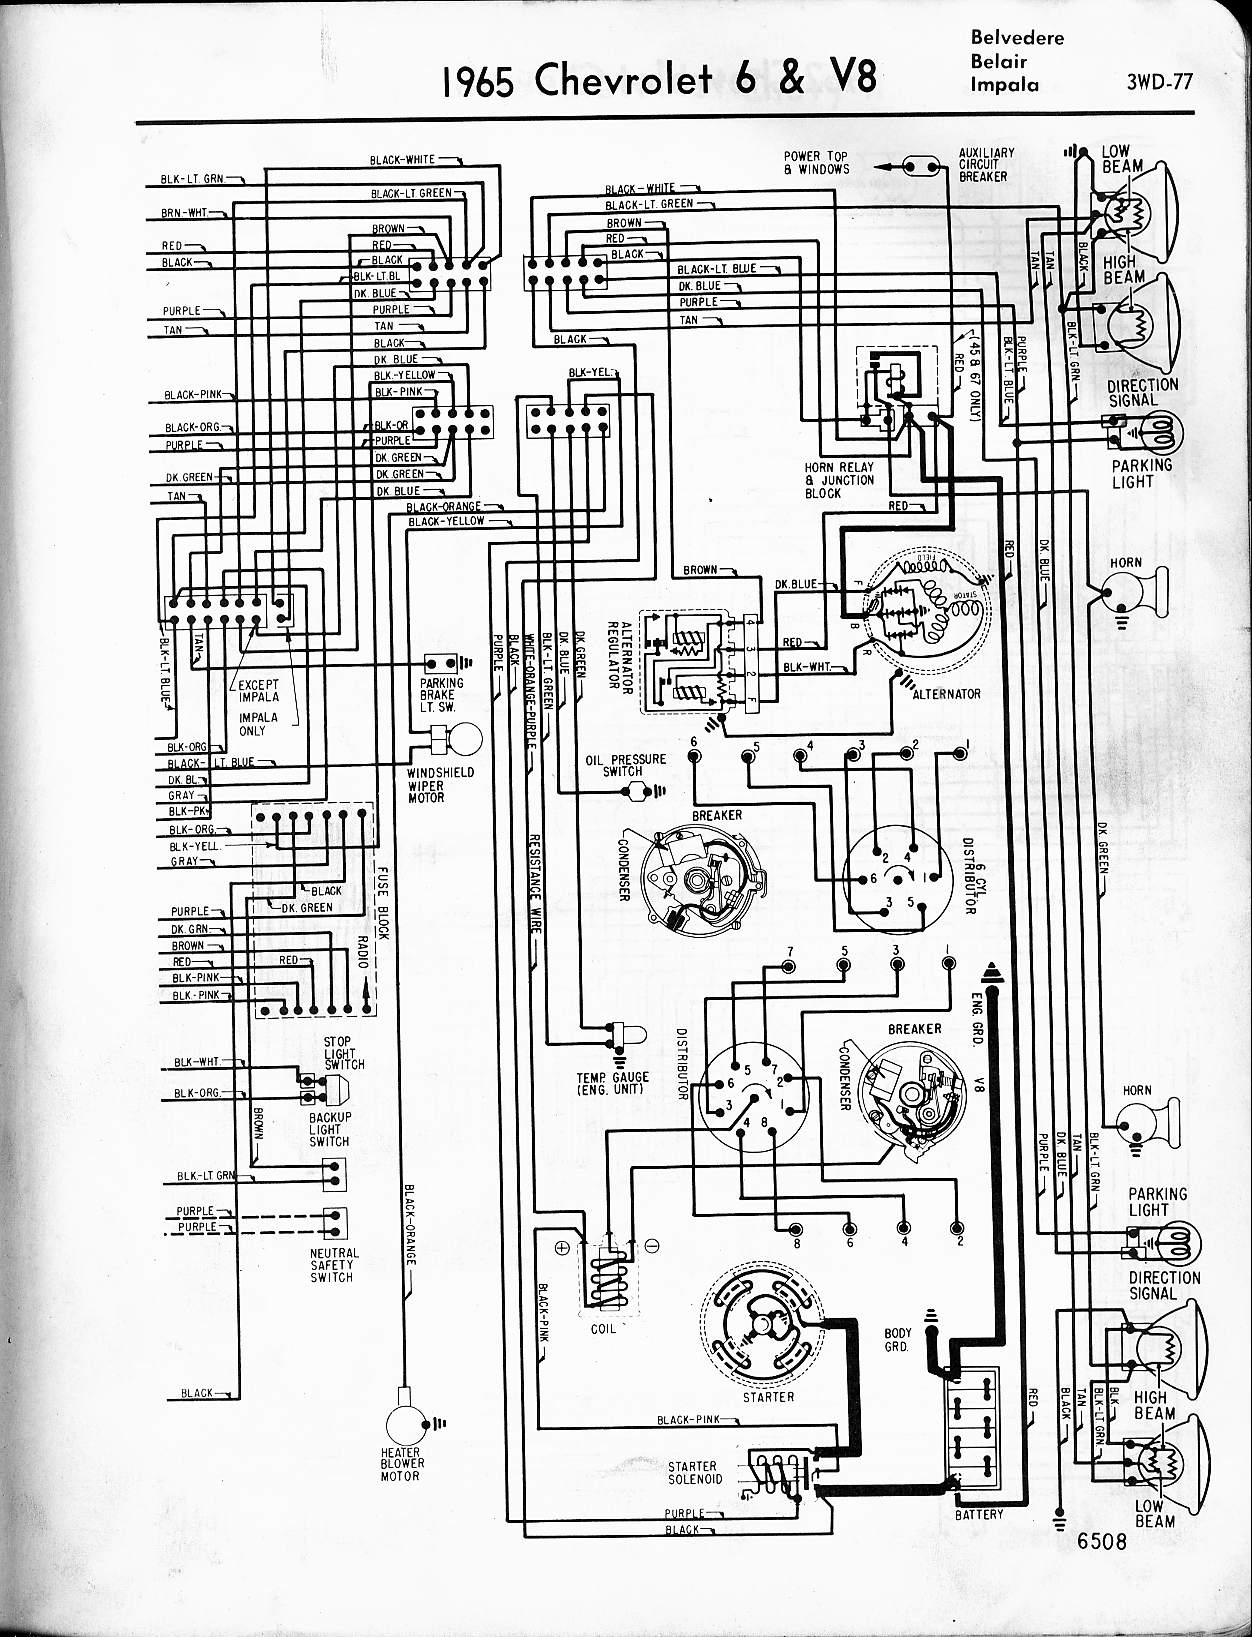 MWireChev65_3WD 077 chevy diagrams 1970 chevelle dash wiring diagram at gsmportal.co